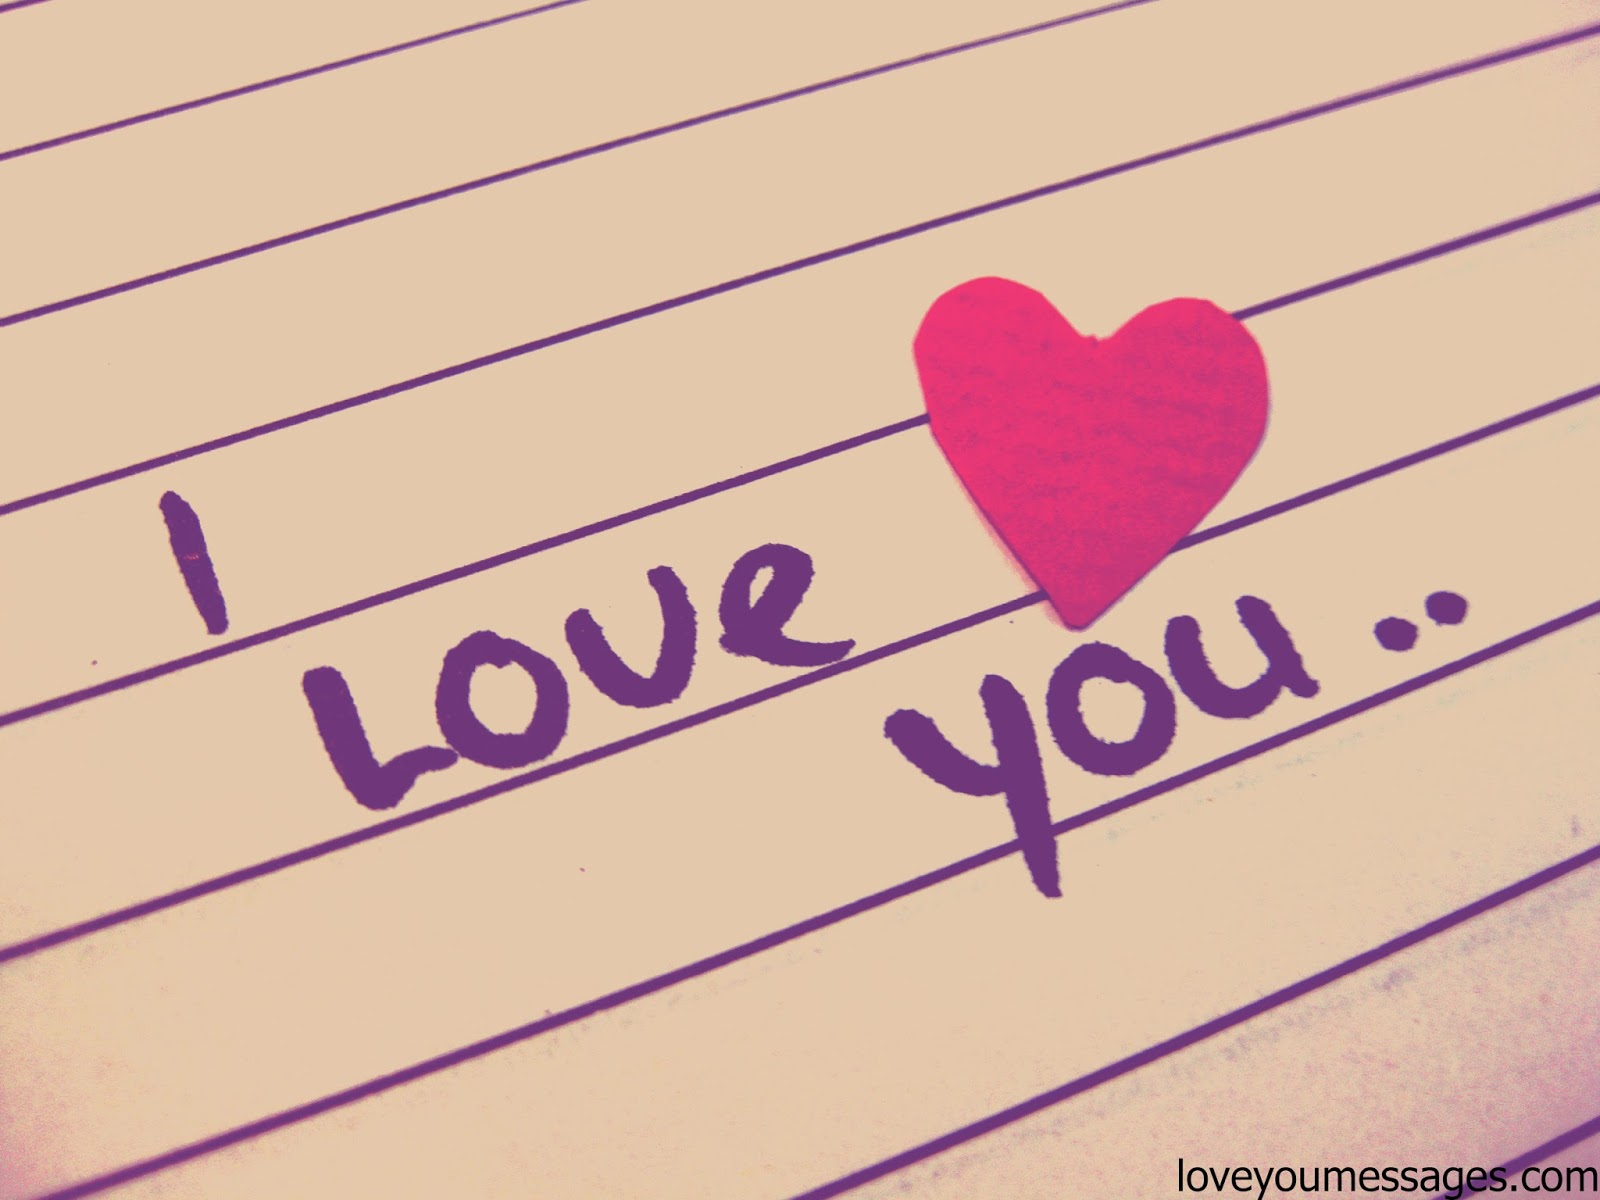 I love you her